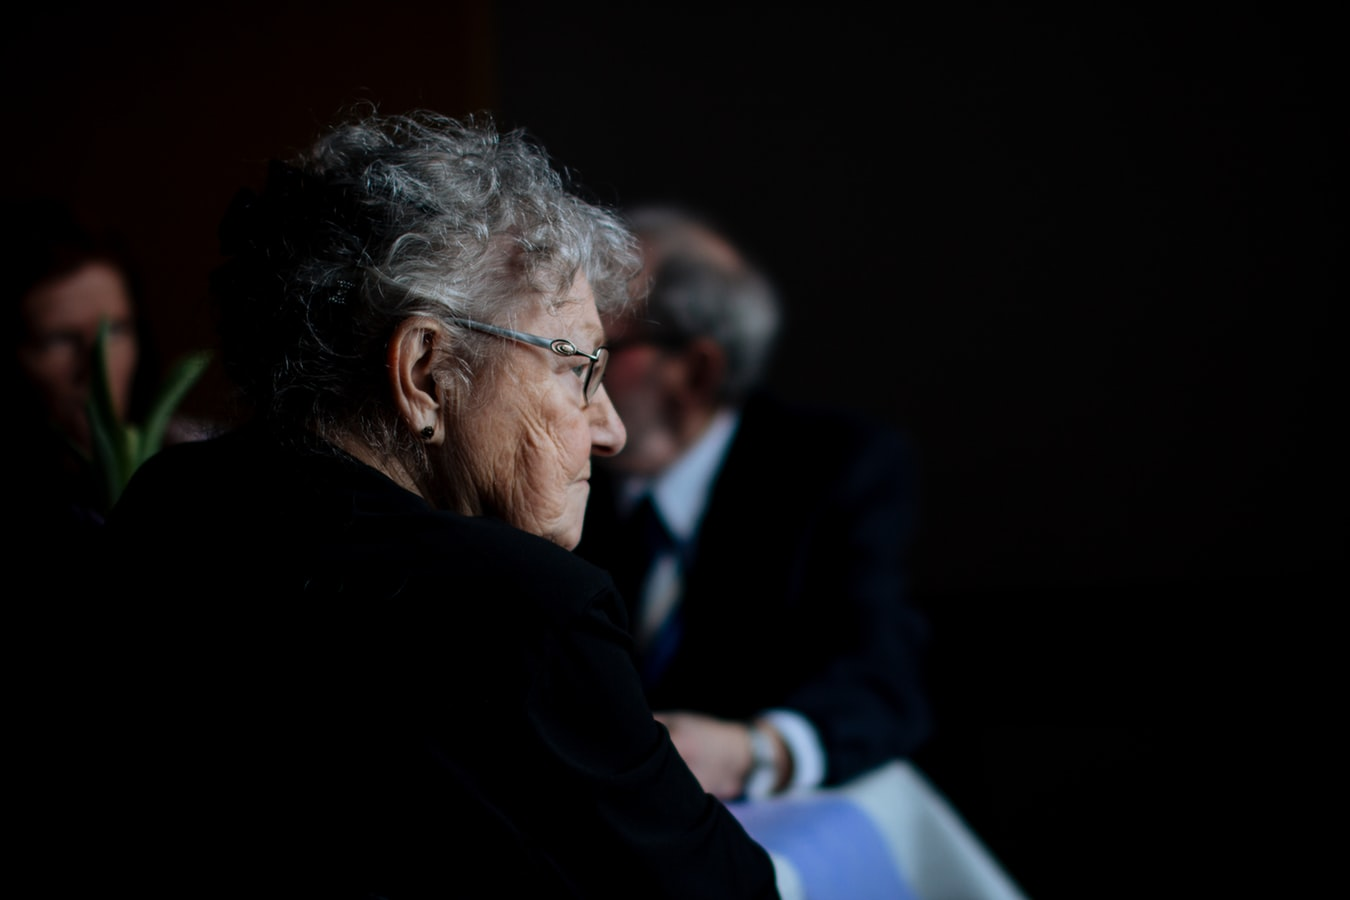 An older woman with Alzheimer's and anxiety sitting in a room with friends